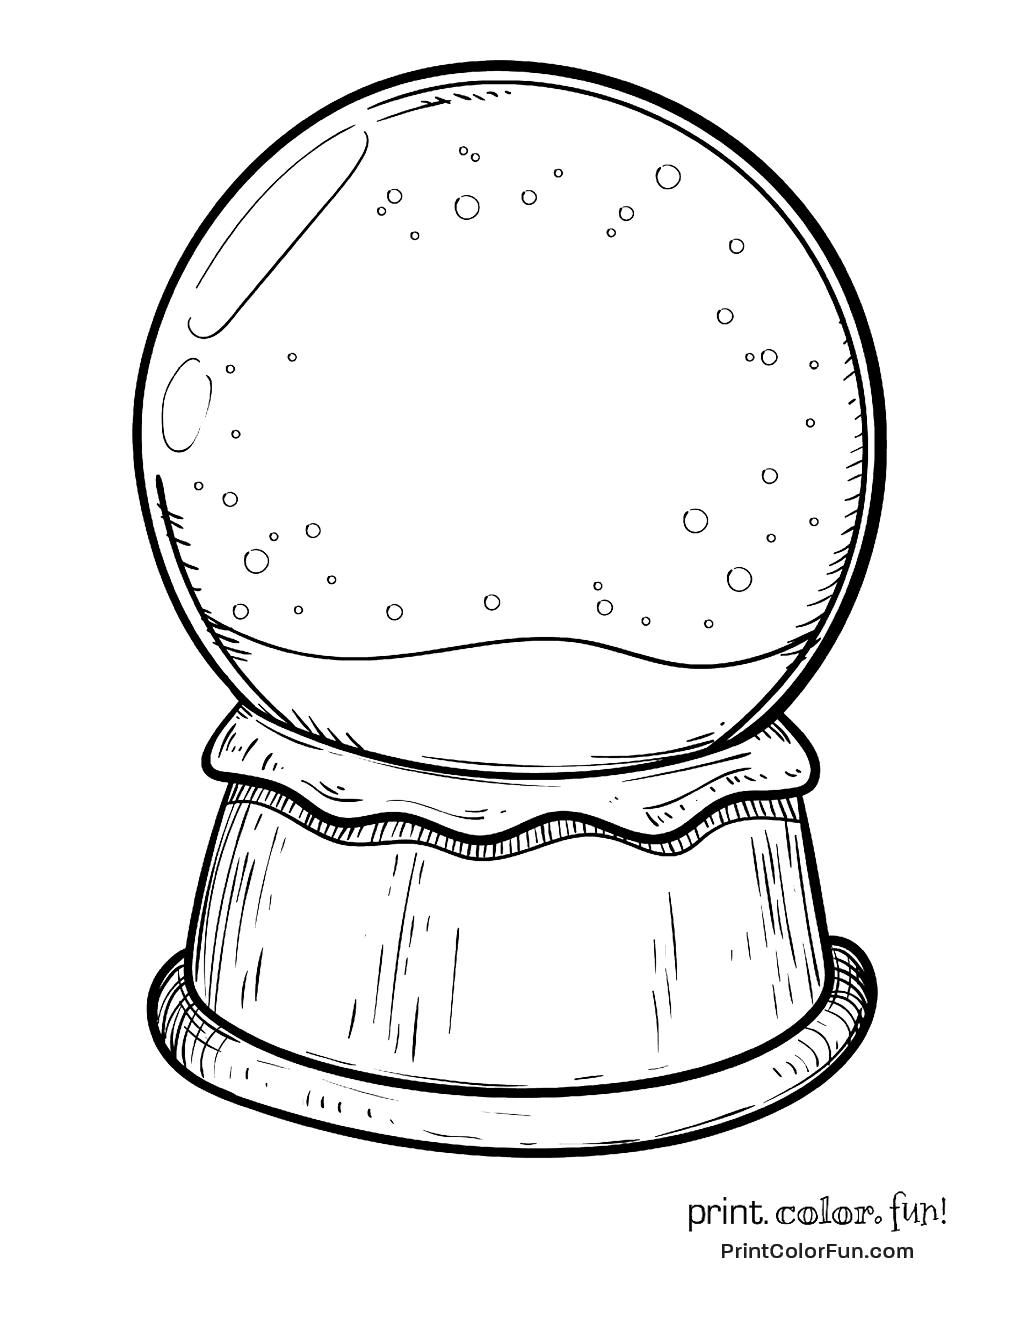 Blank snow globe coloring page - Print. Color. Fun!